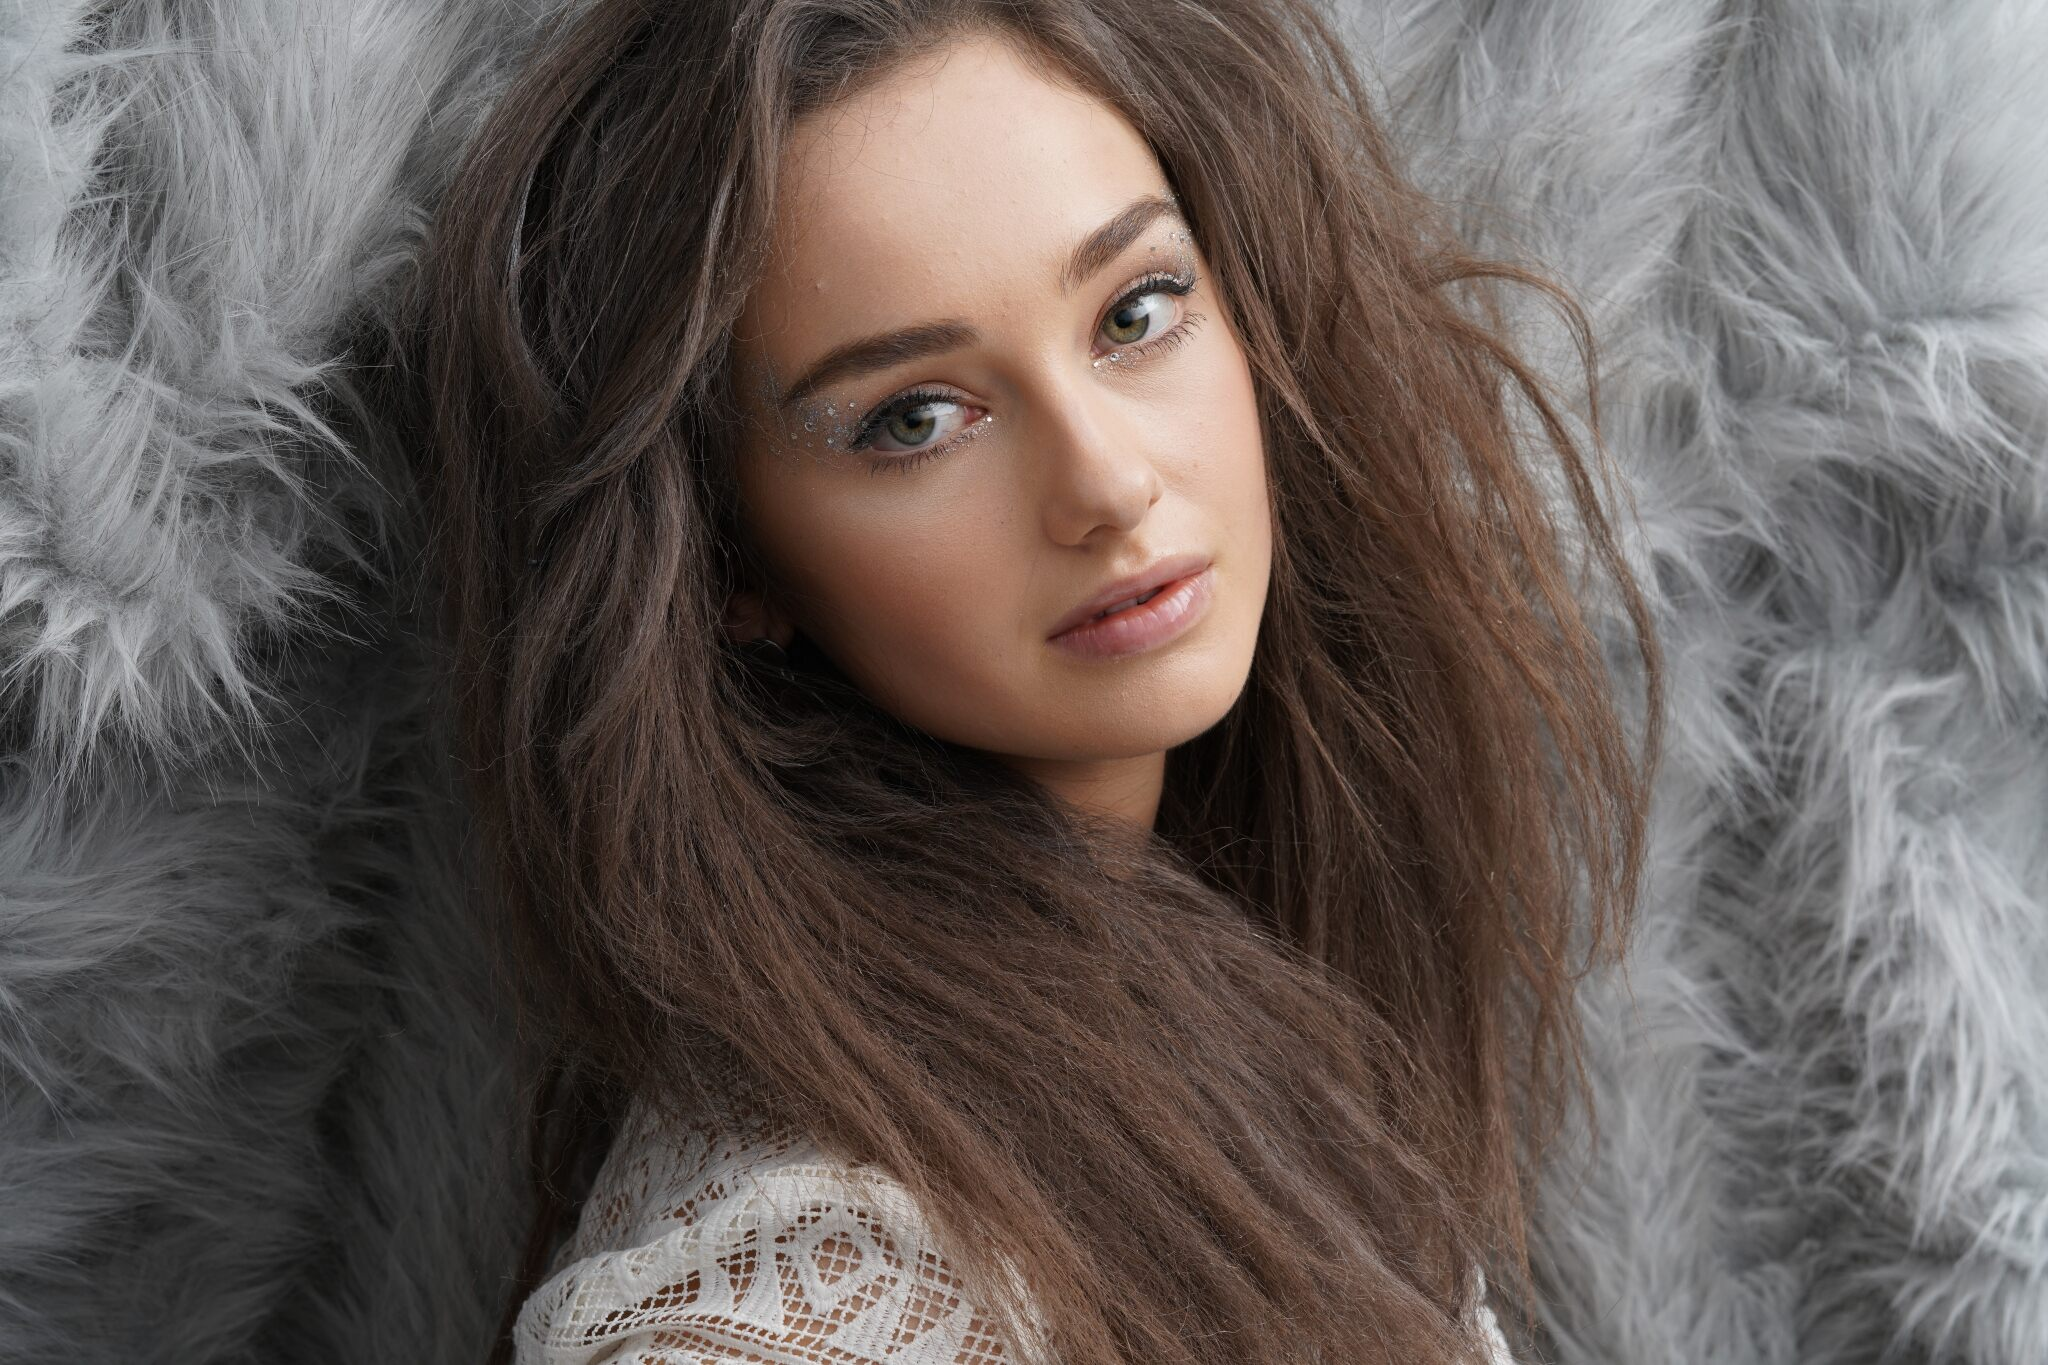 Fashion model with teased brown hair posed against a grey shagpile backdrop, photographed with the Sony a7R Mark IV camera